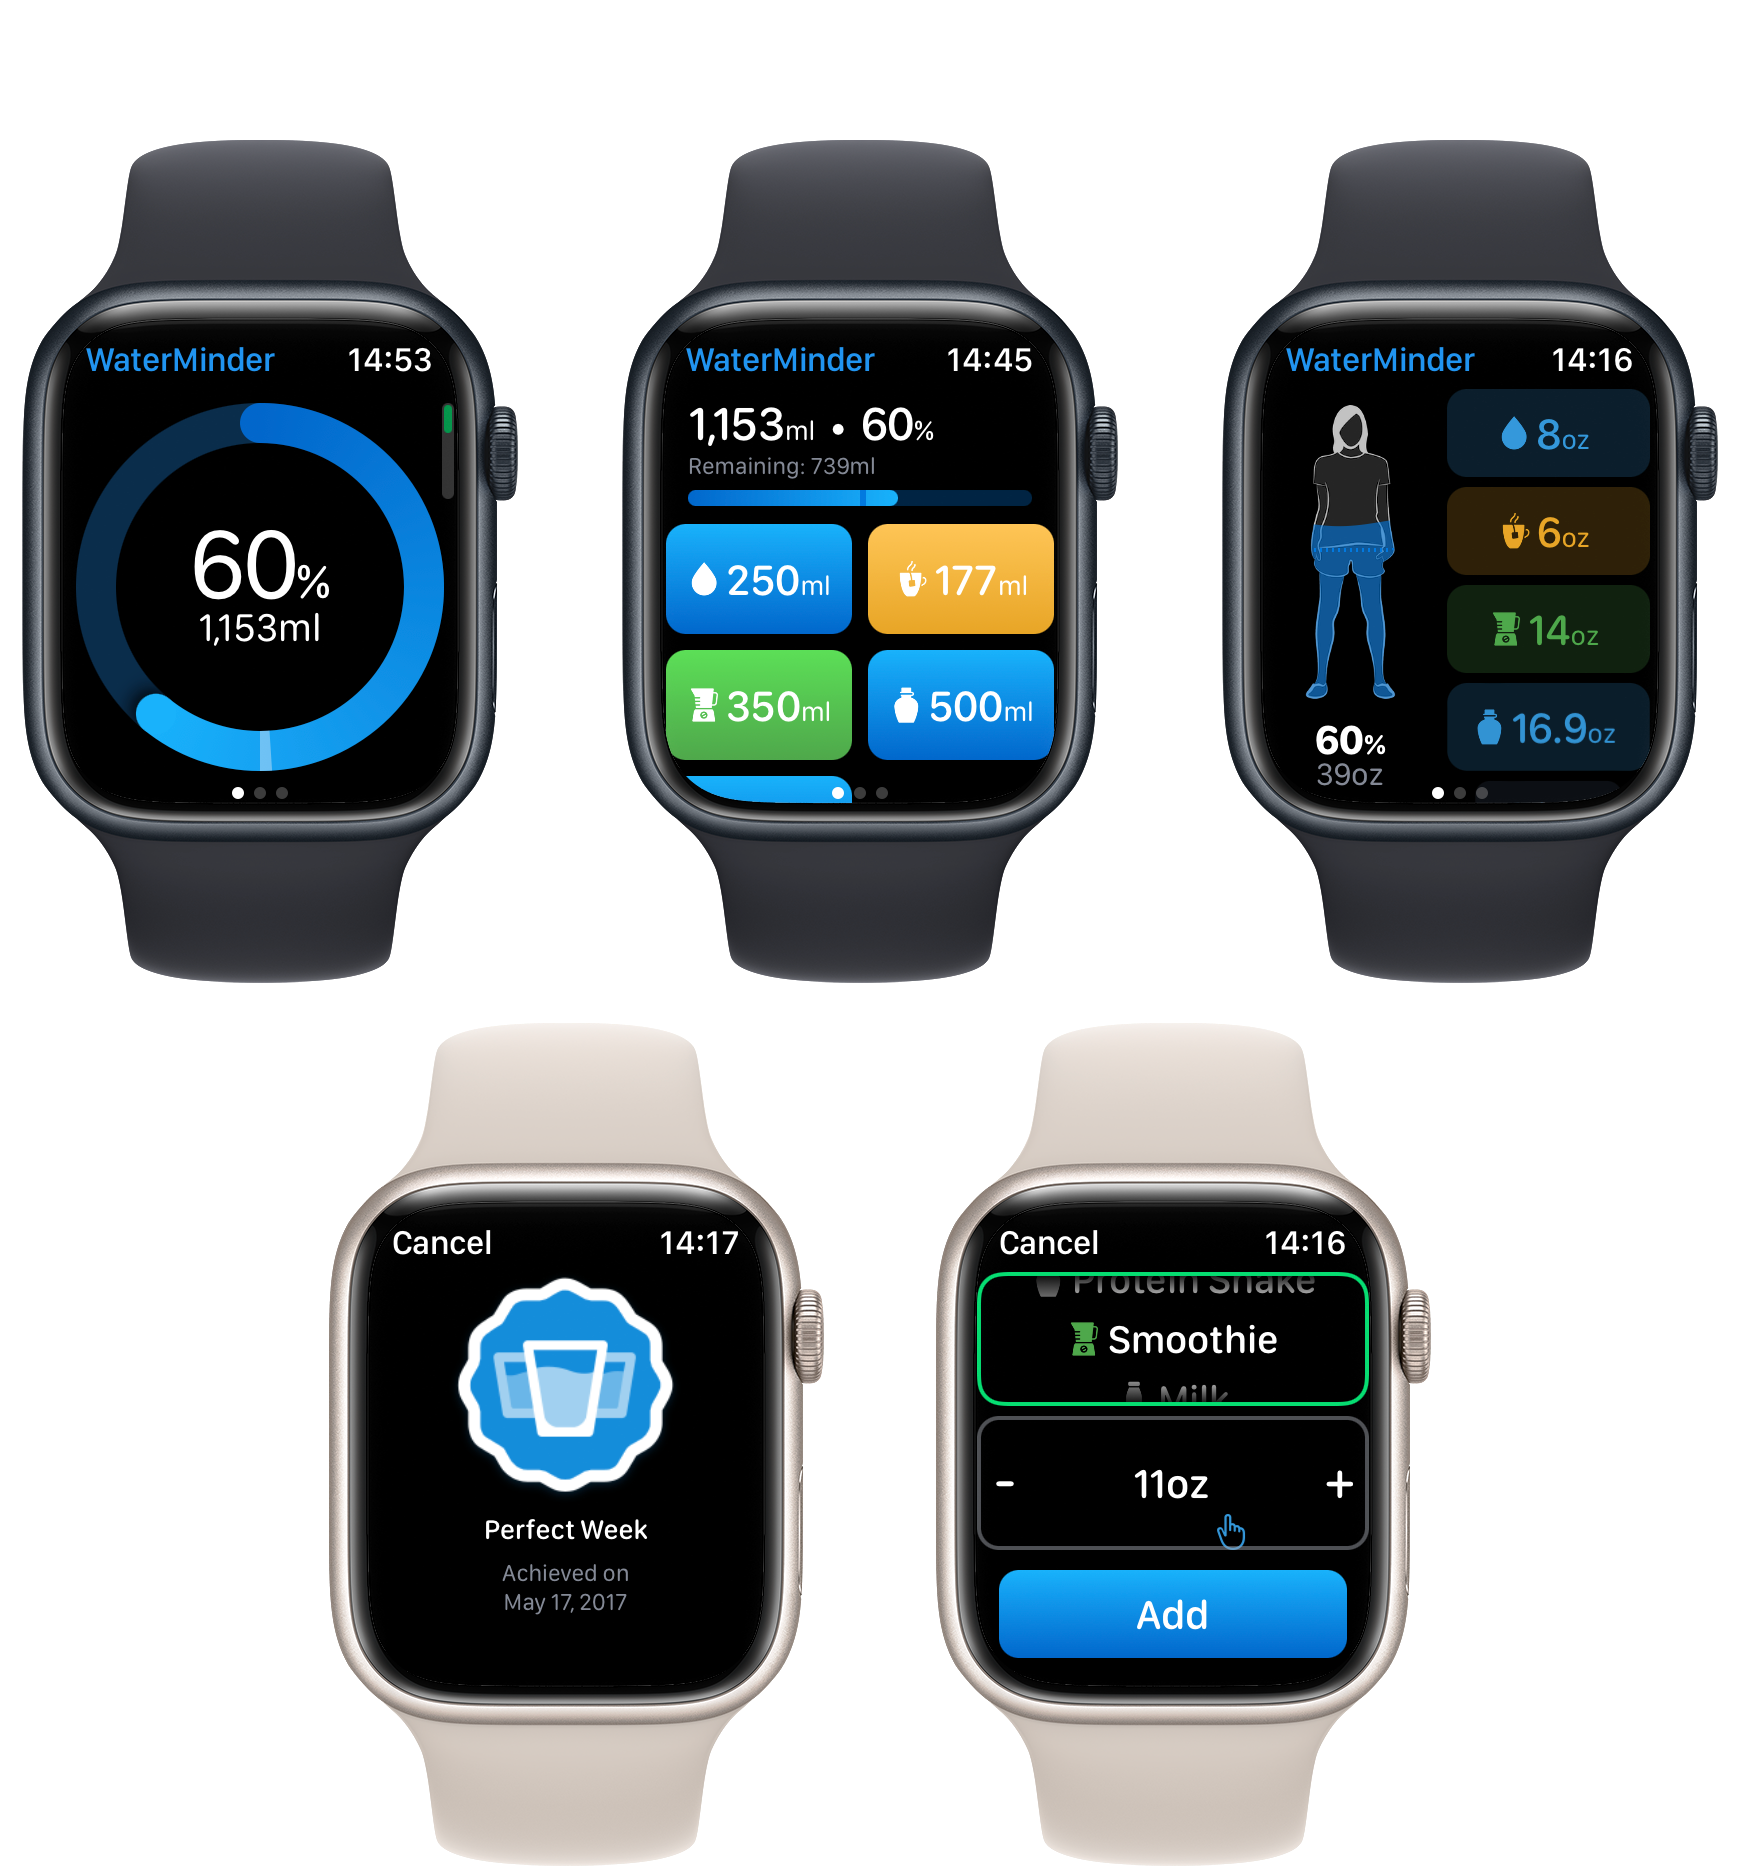 WaterMinder Apple Watch